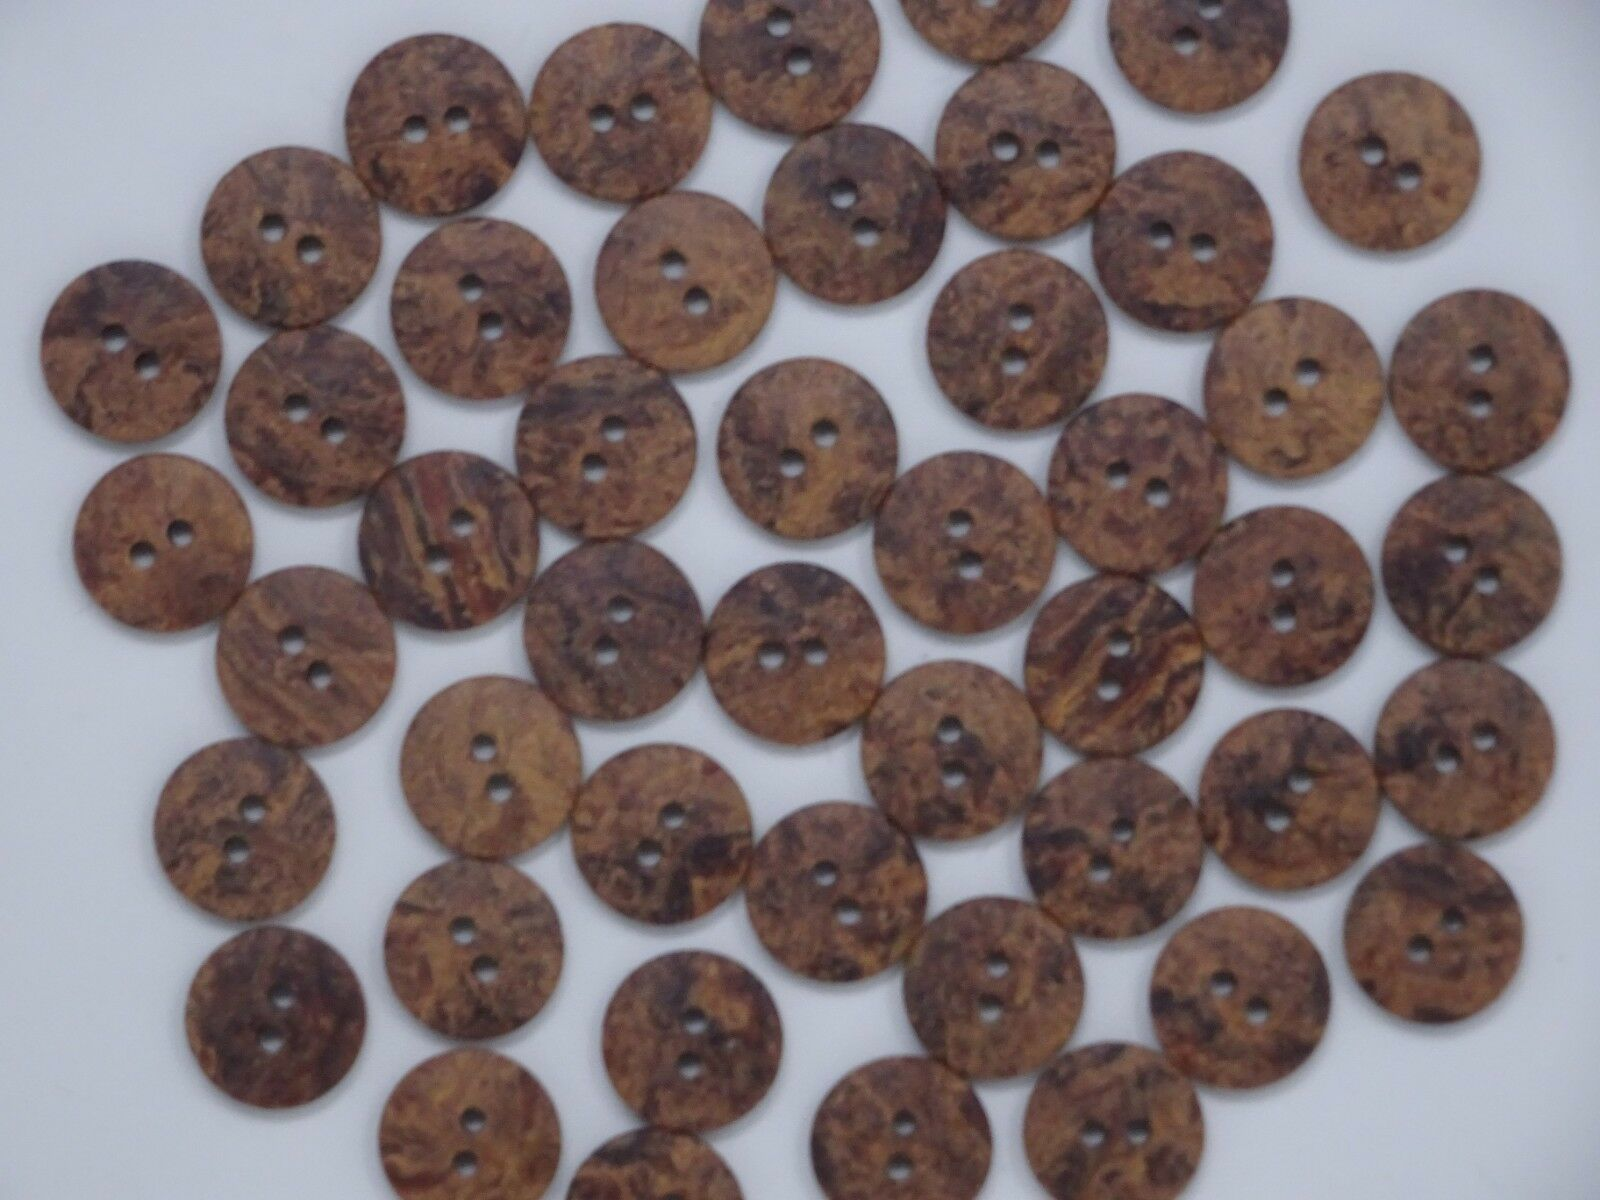 Vintage Brown Black Mottled Round 2-Hole Buttons Textured 15mm Lot of 4 AA9 Unbranded Does Not Apply